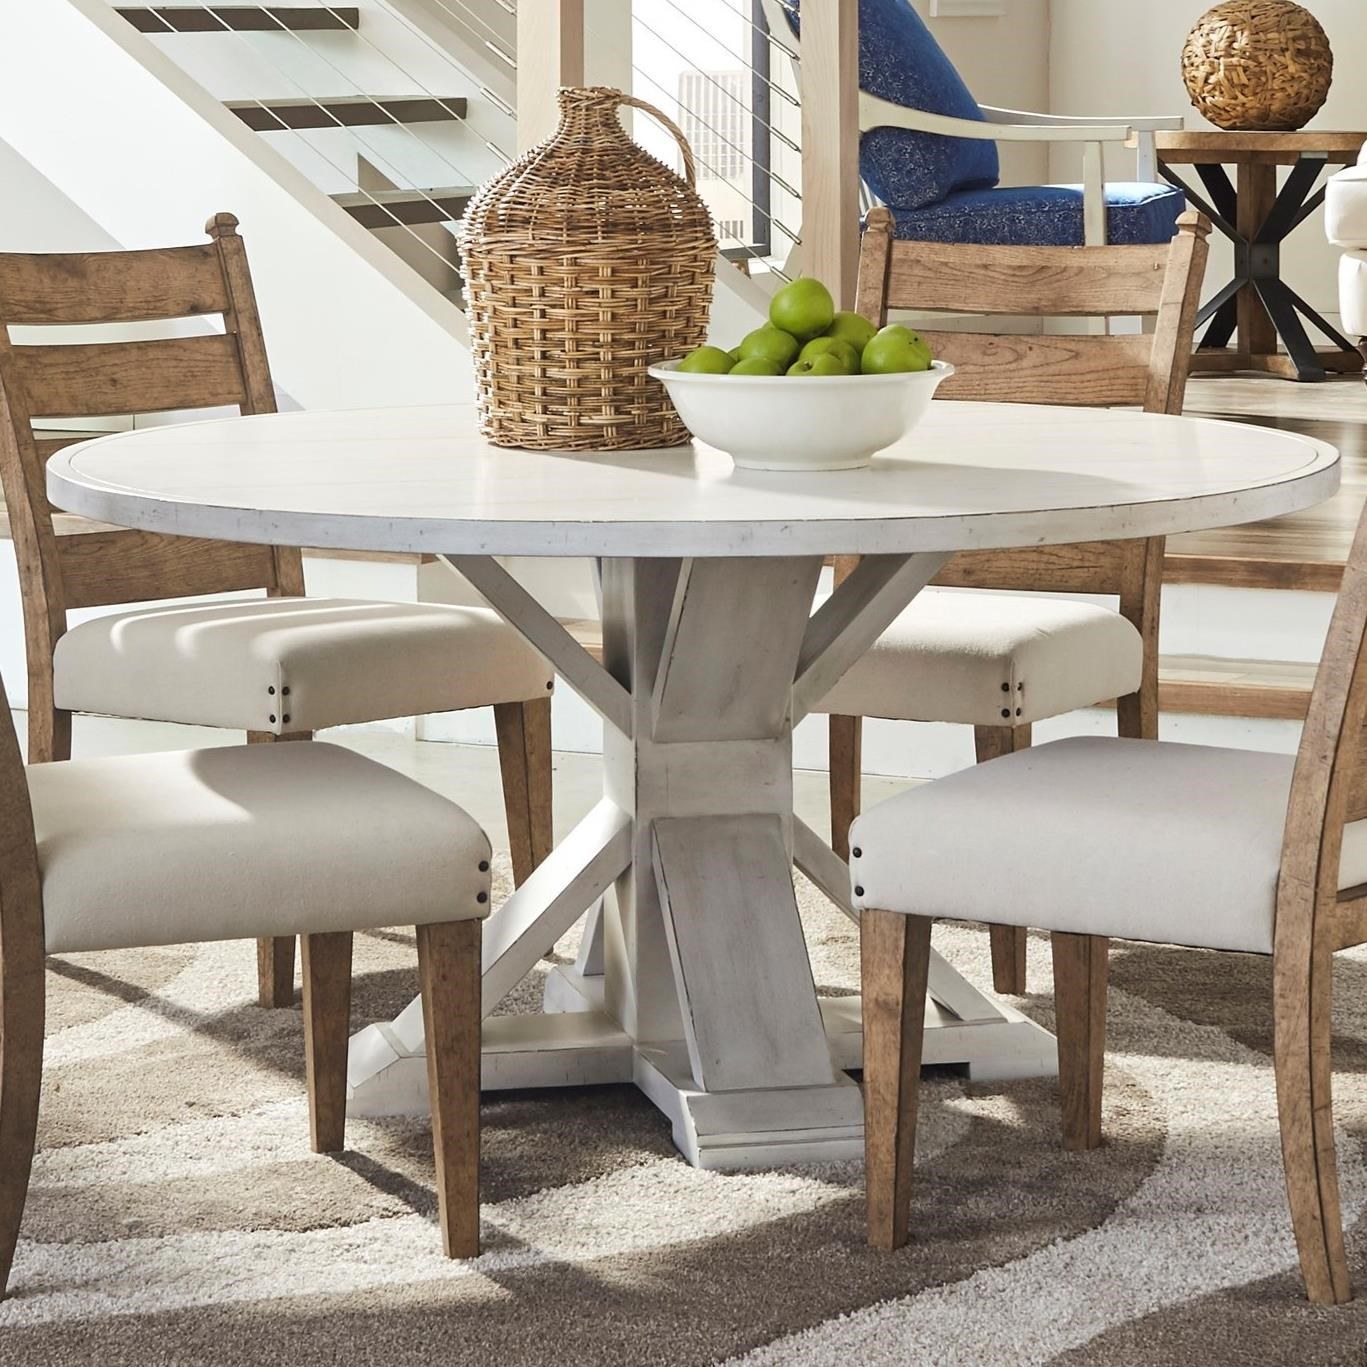 Get Together Dining Table